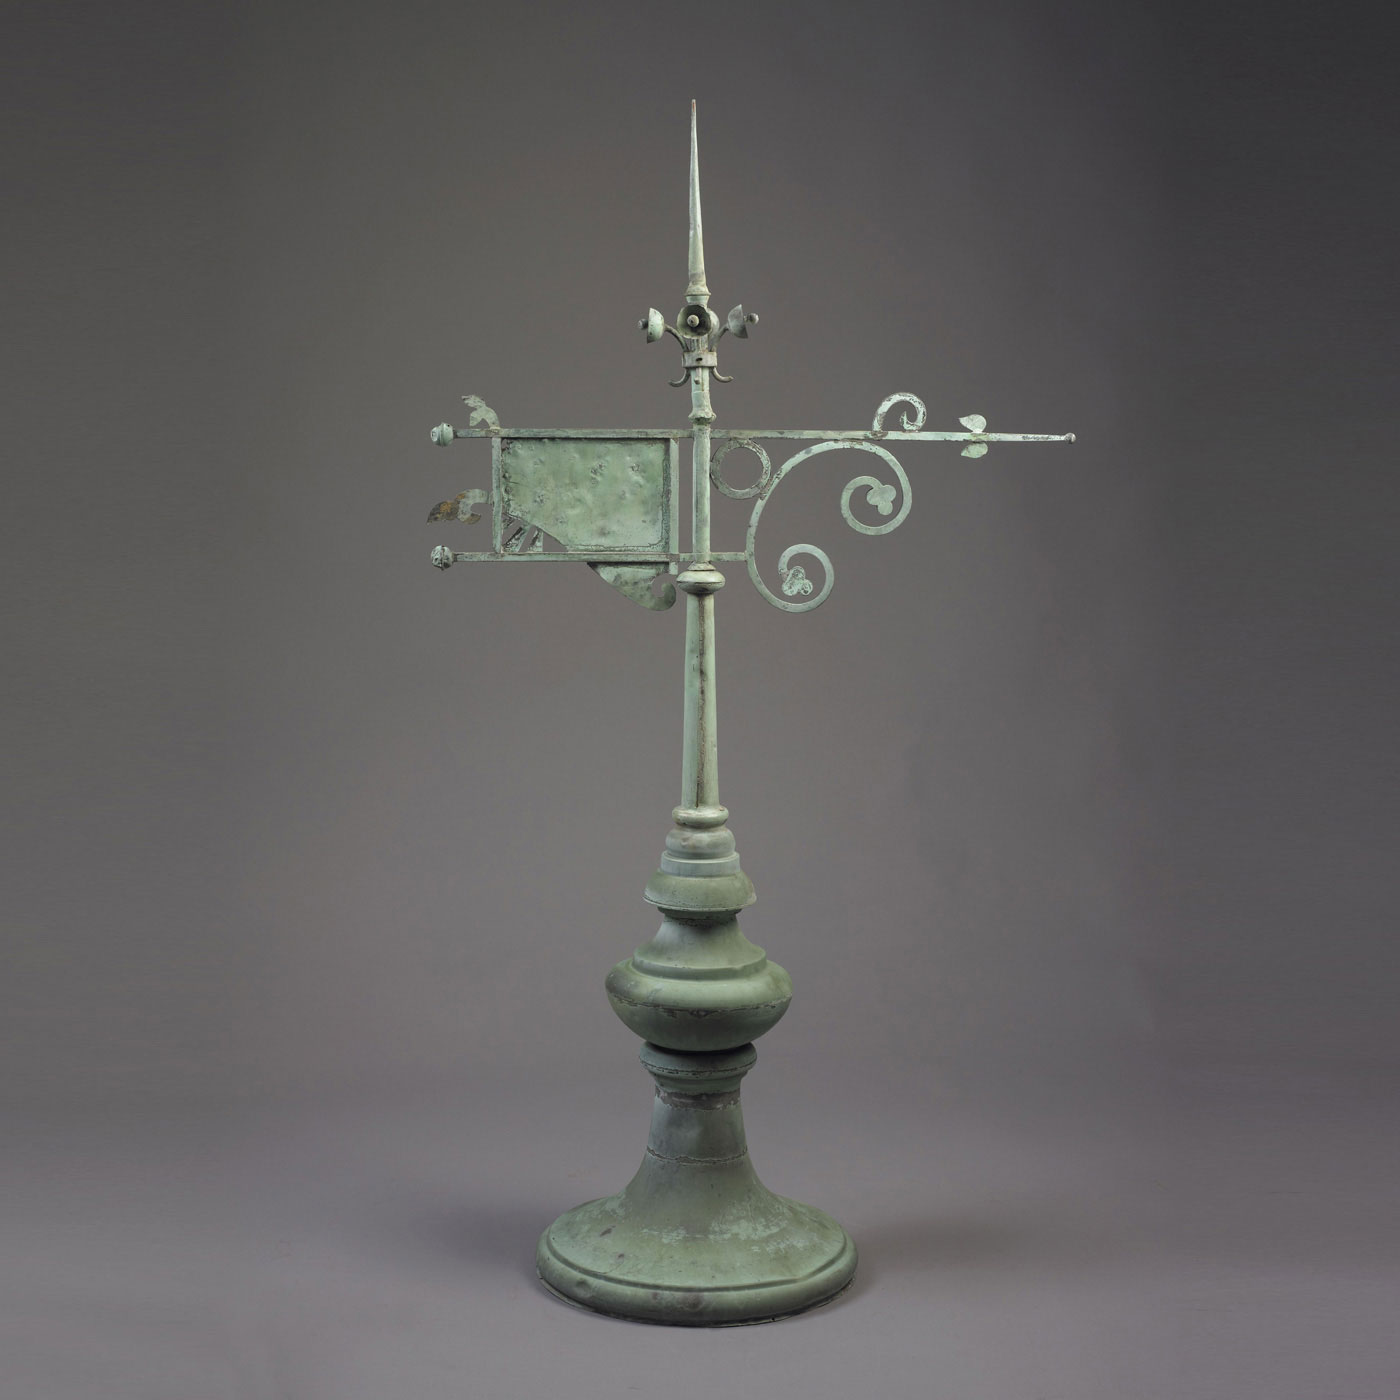 Vintage Weather Vane: Heir And Space: When Disaster Strikes